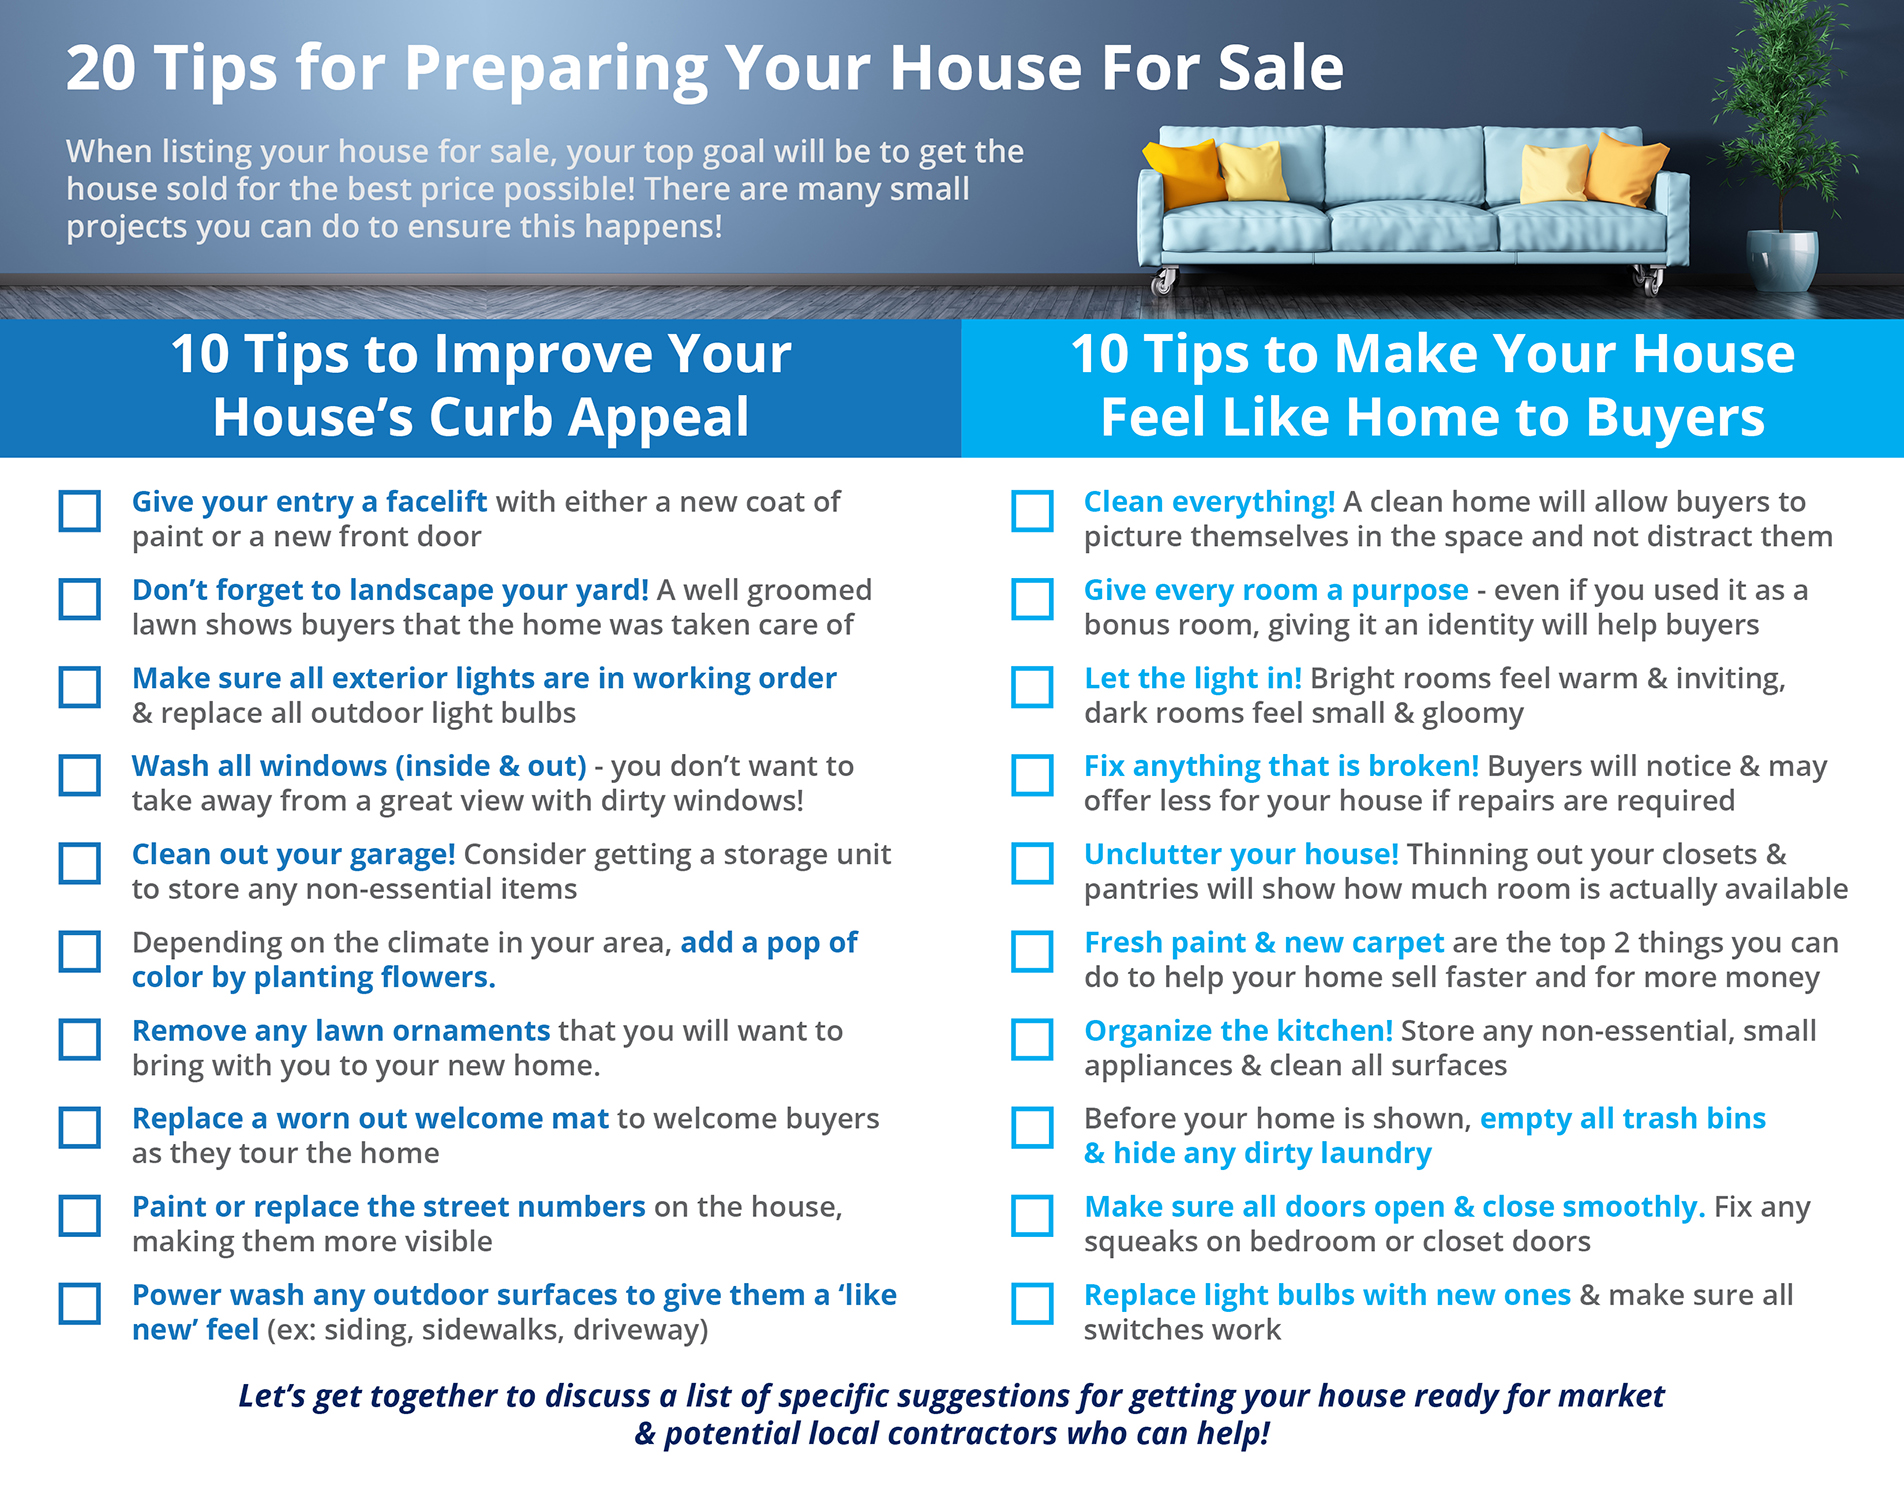 20 Tips For Preparing Your House For Sale   Simplifying The Market